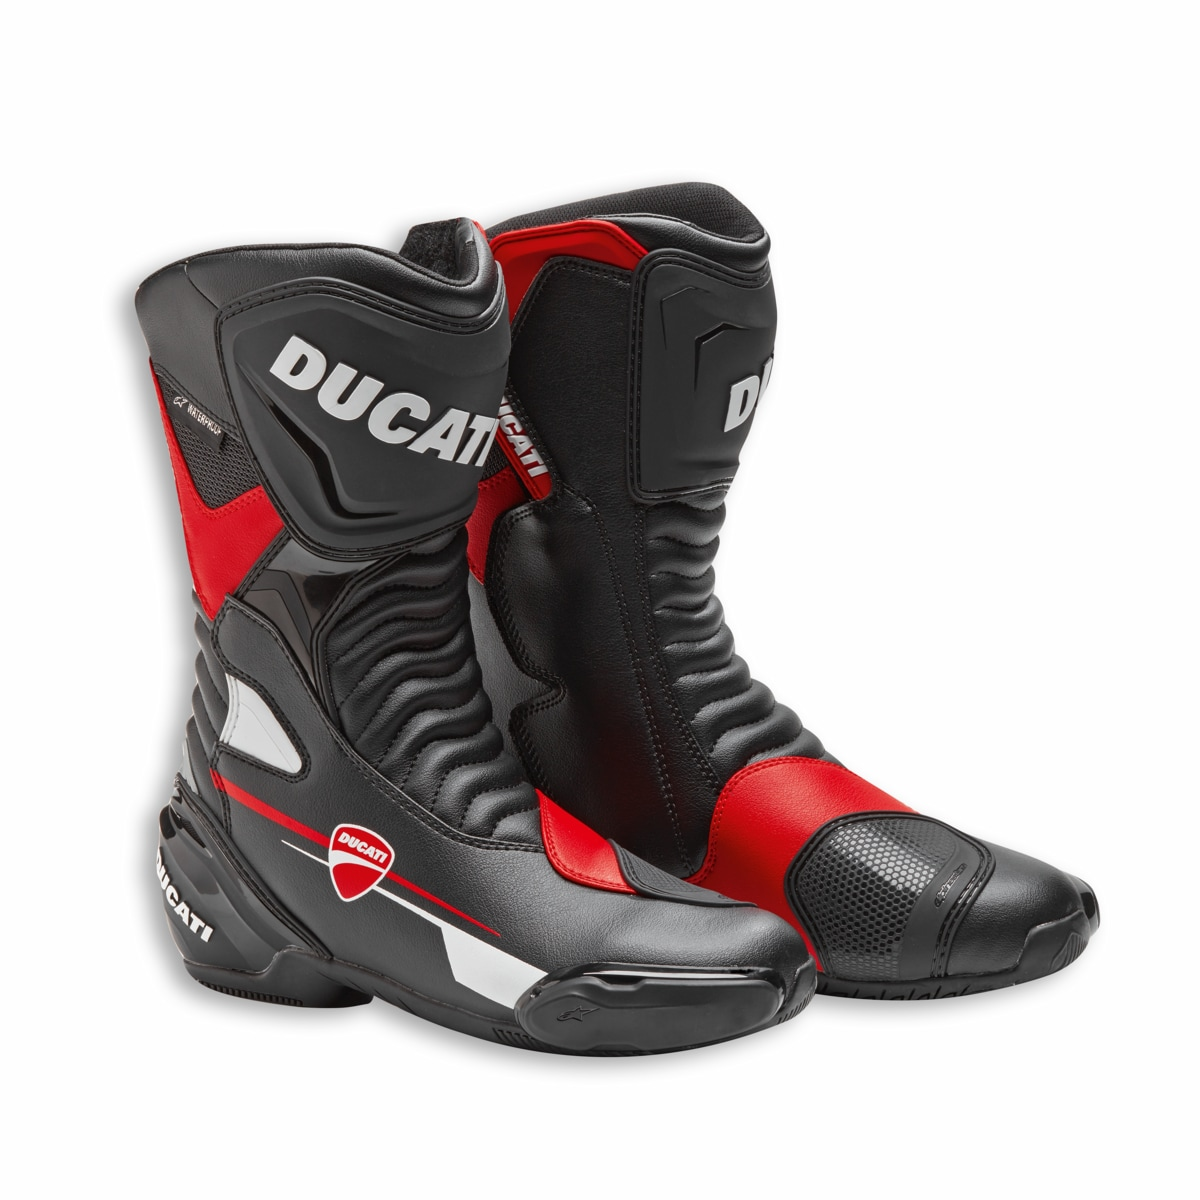 3f46a171 Speed Evo C1 WP - Botas sport-touring | Motorcycle wear | apparel Ducati